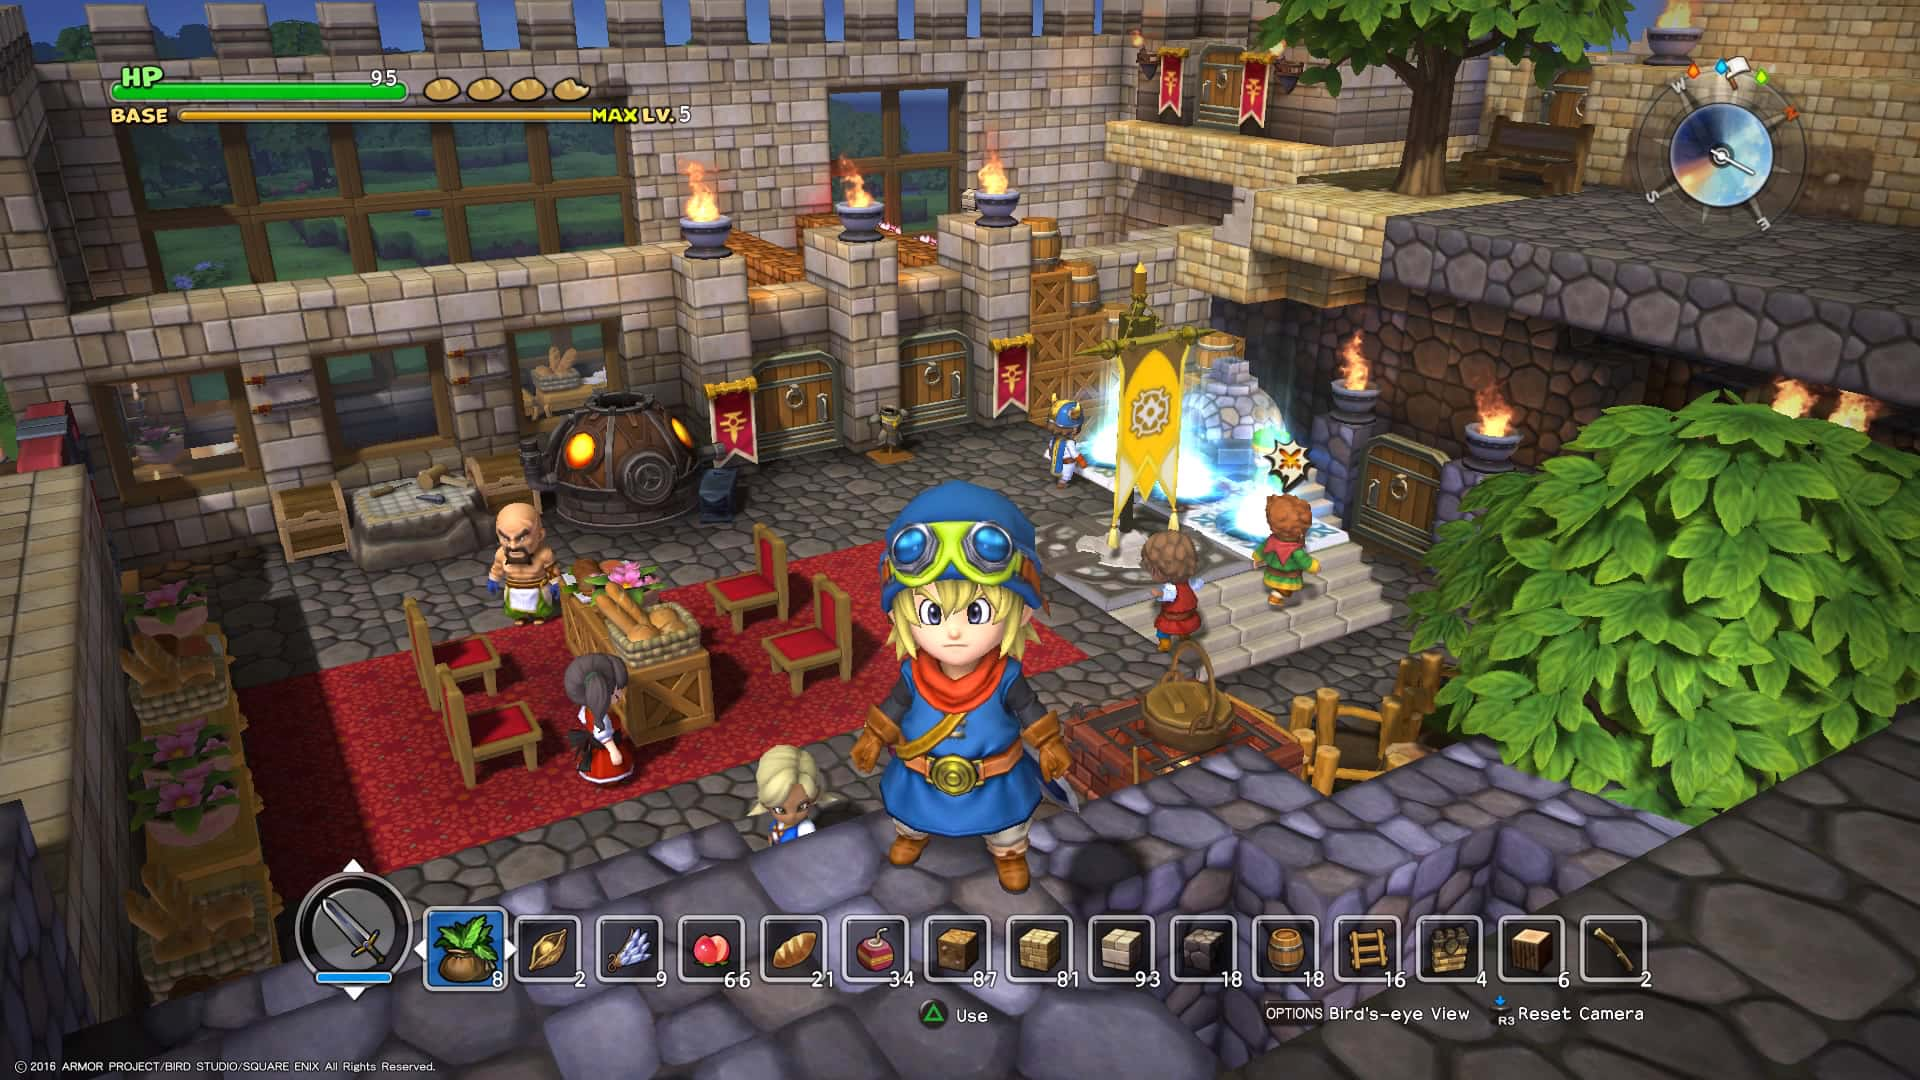 dragon-quest-builders-the-vgprofessional-review-8